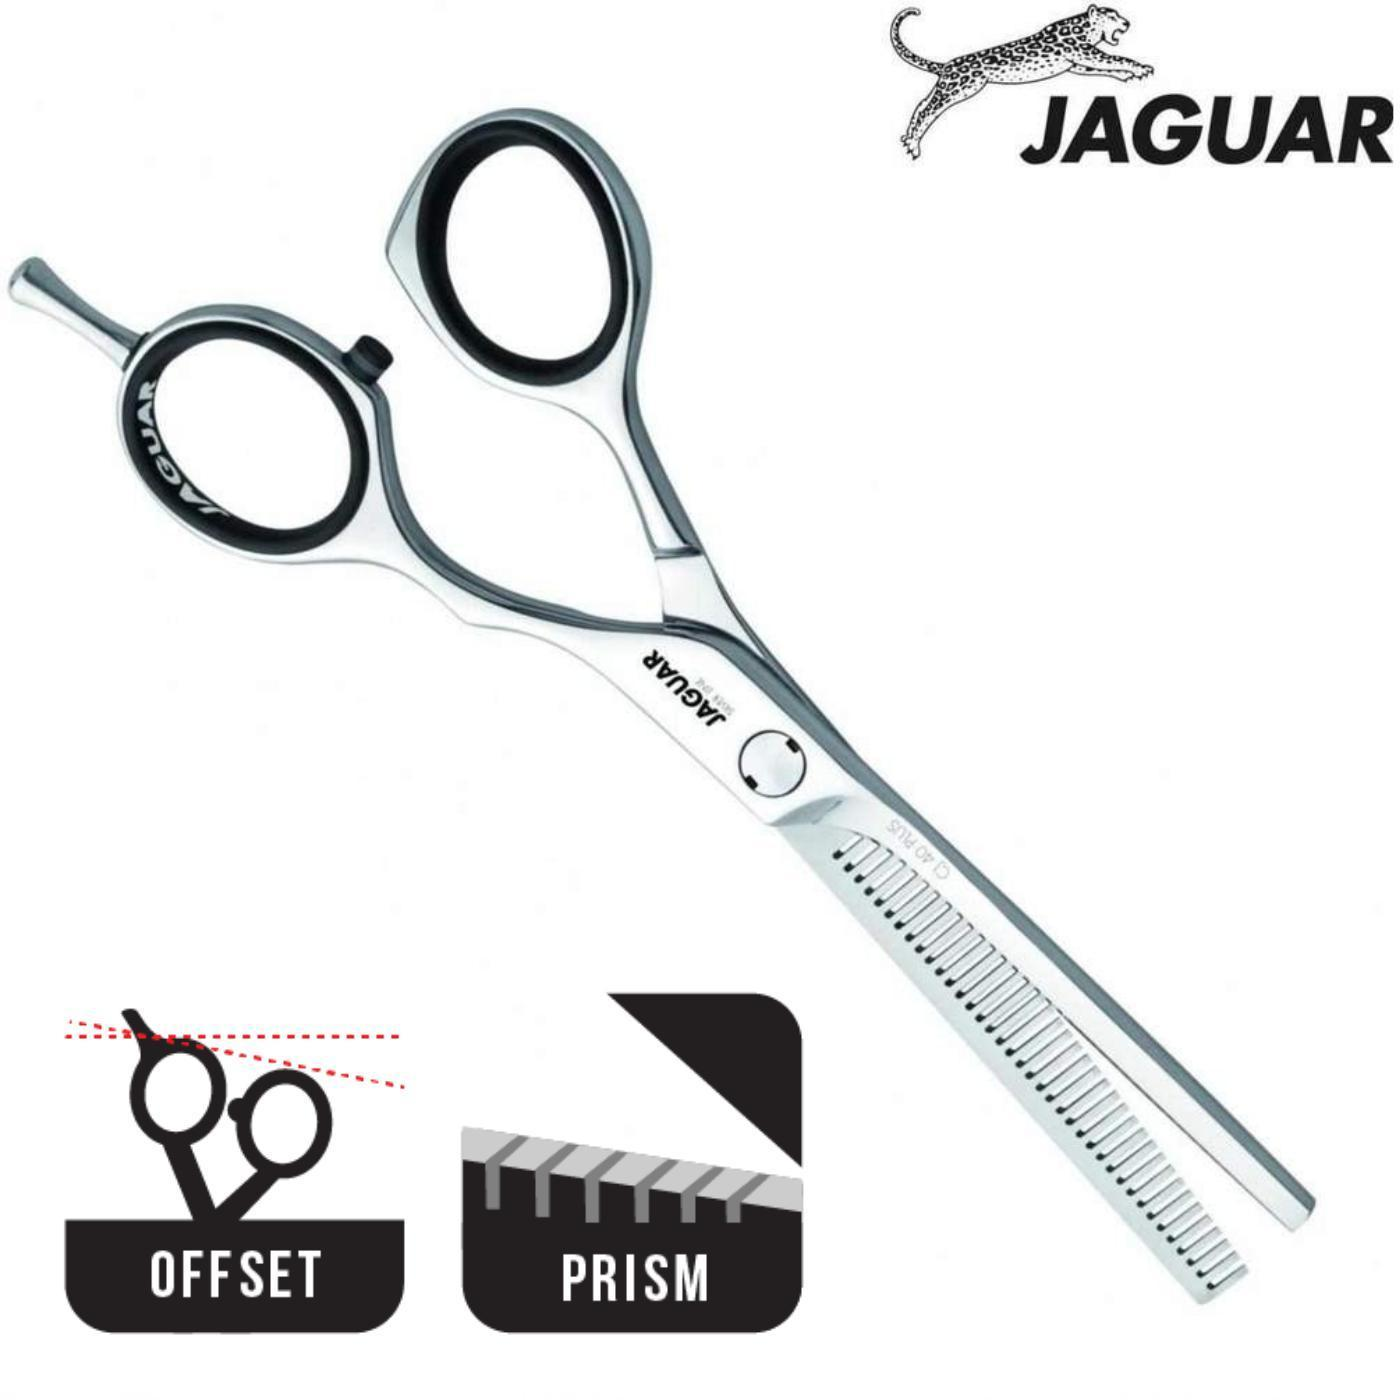 Jaguar Silver Line CJ4 Plus Hair Thinning Scissors - Japan Scissors